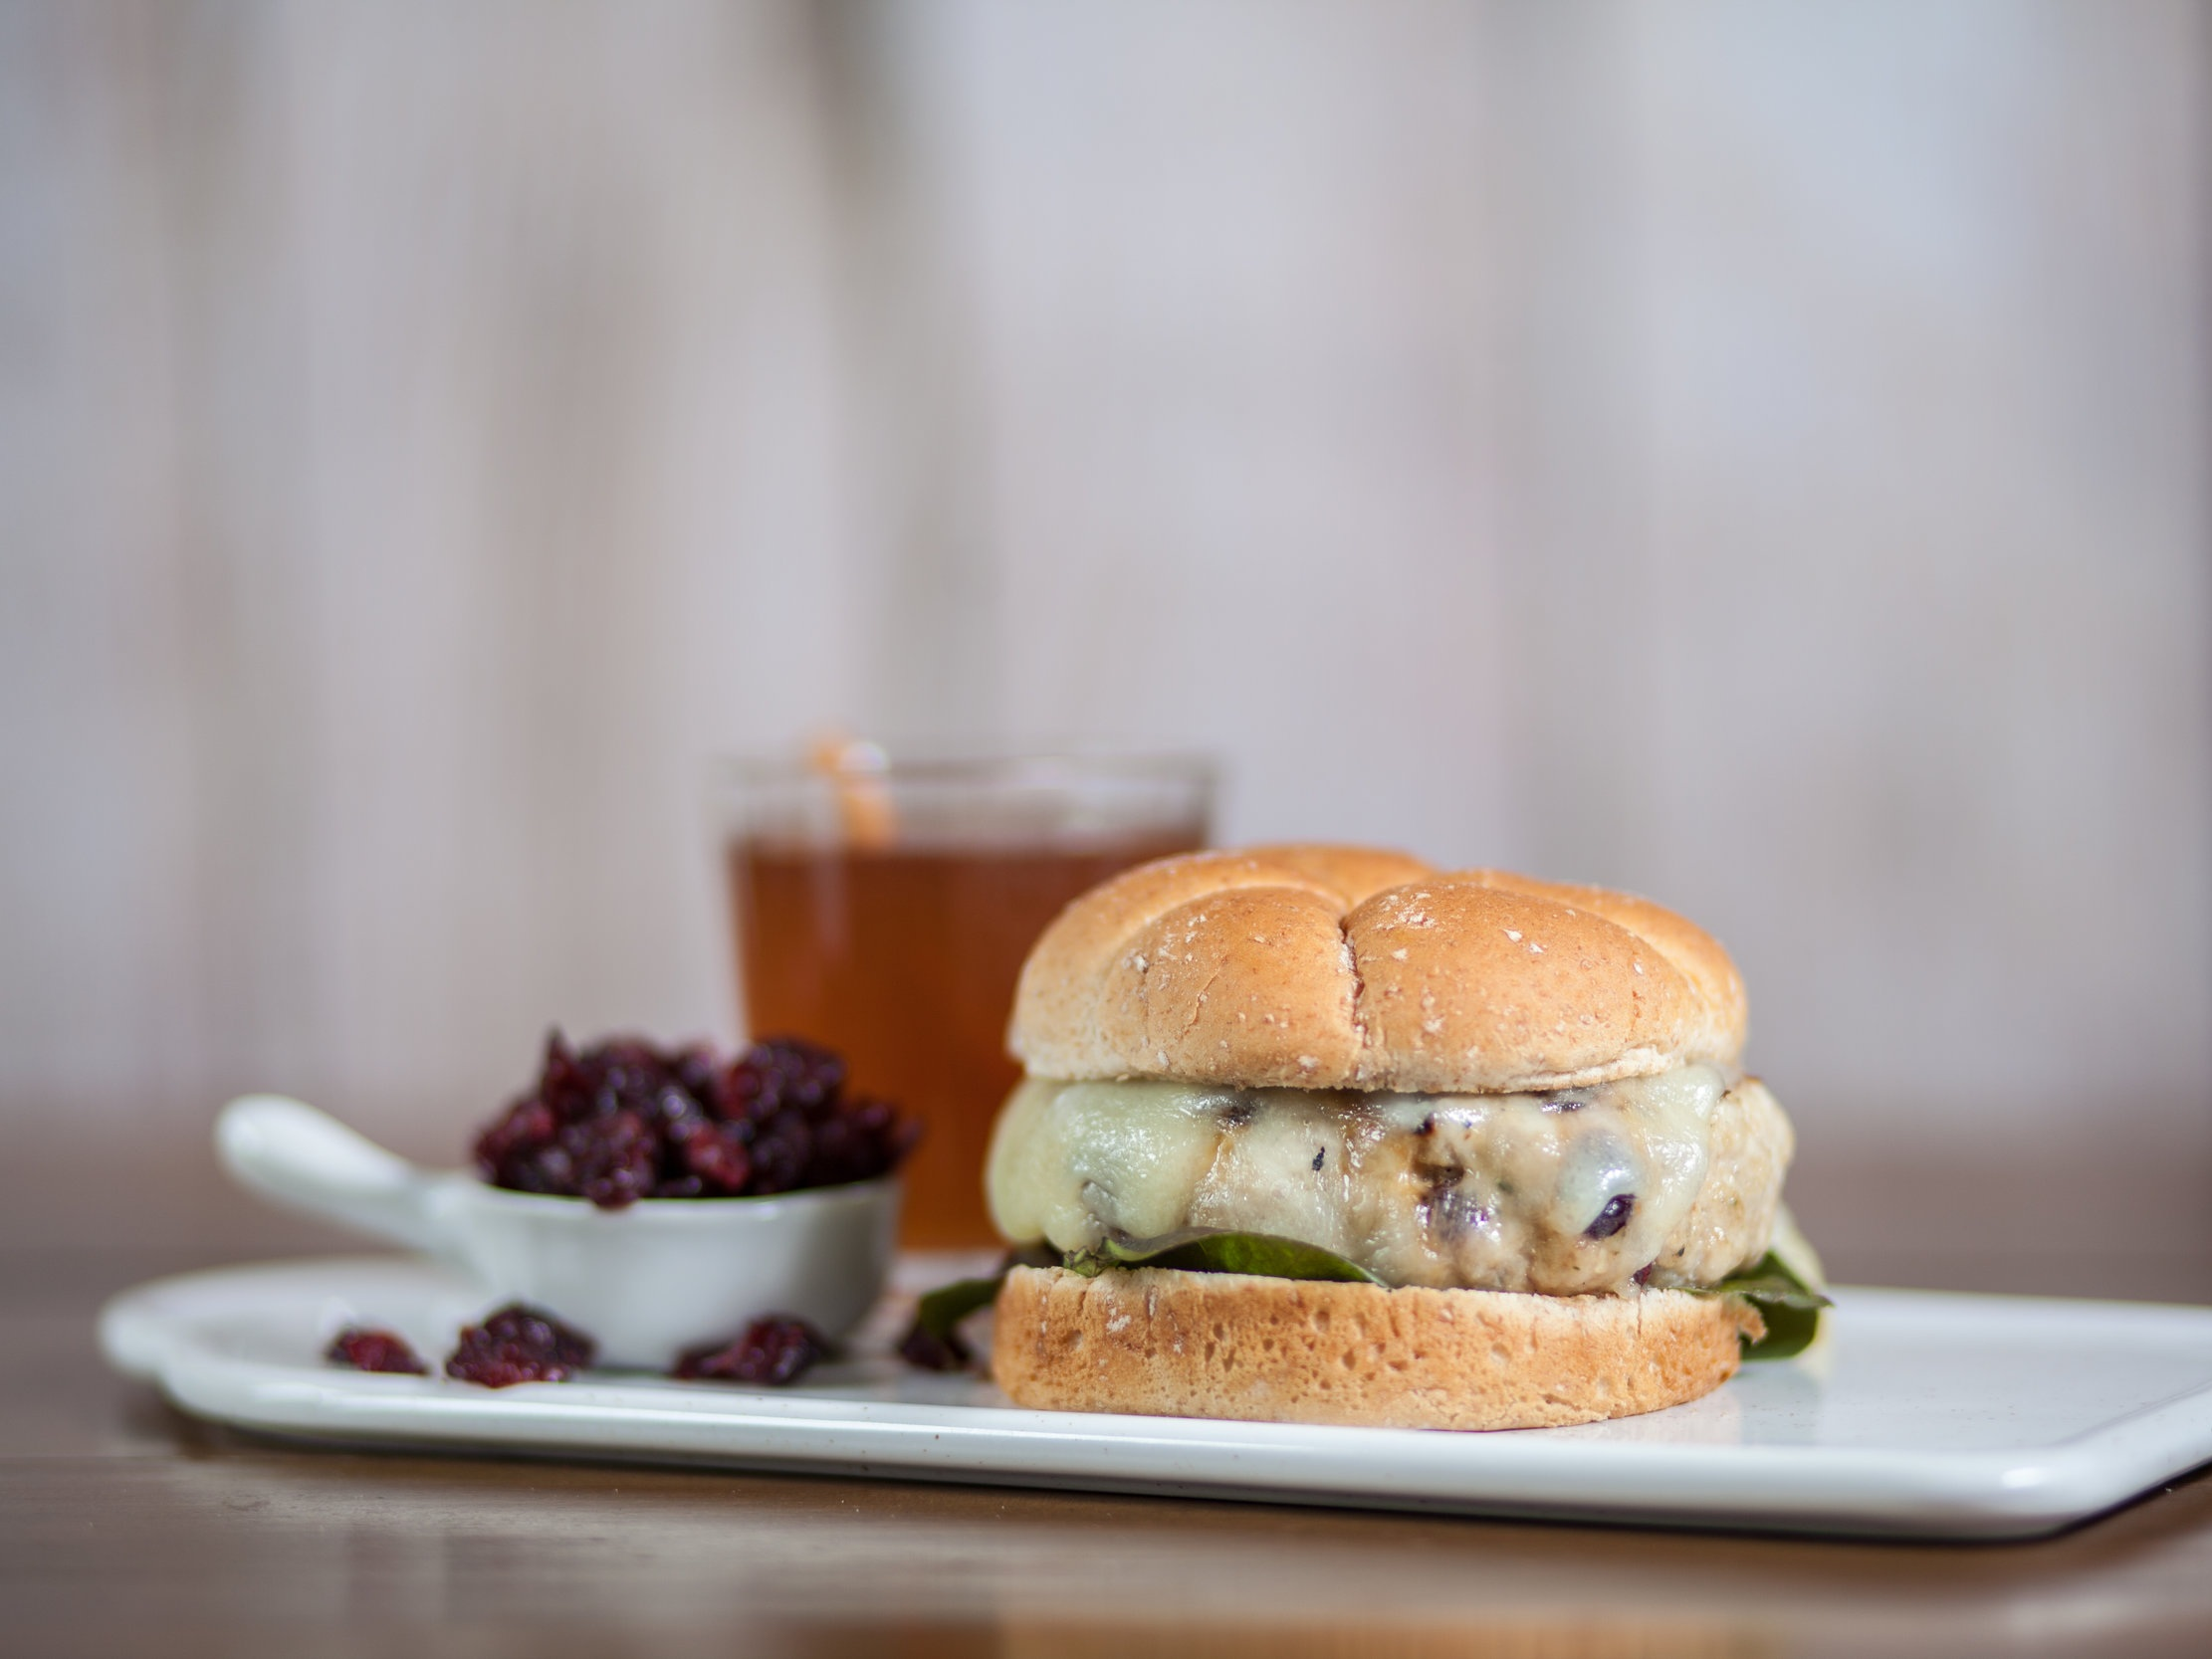 Cranberry Chicken Burger - We can't help but feel totally fancy when we make these burgers. On our Hearth Whole Grain Hamburger Buns, this chicken burger is decadent tasting! Like, if expensive had a taste, it would taste like this, but it isn't expensive. Win-win-win all around.